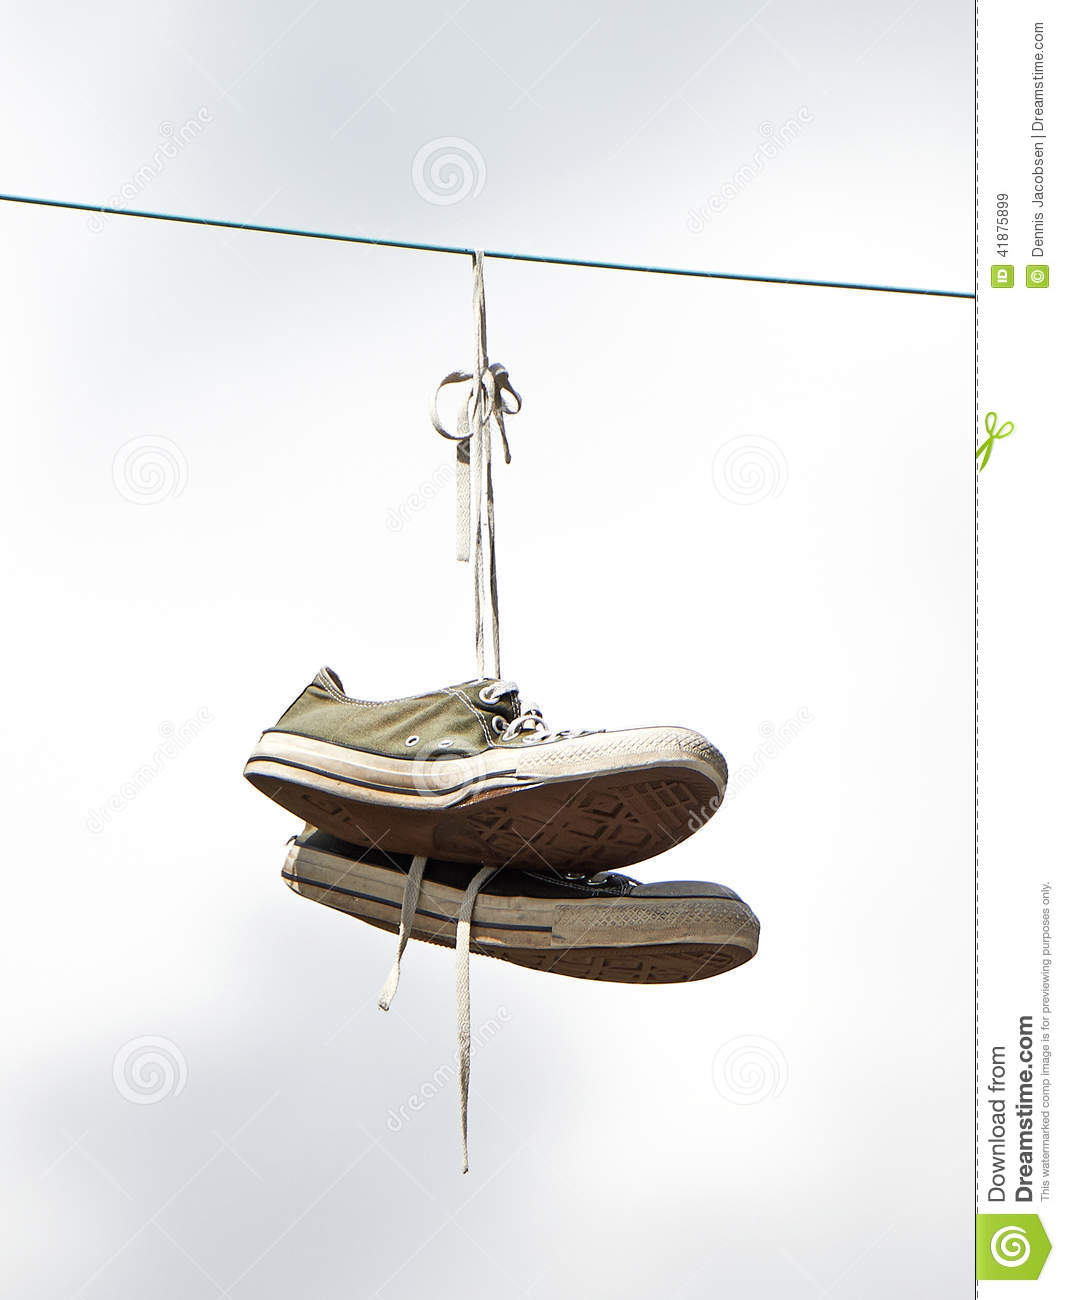 Old Sneakers Hanging From A Powerwire Stock Image , Image of